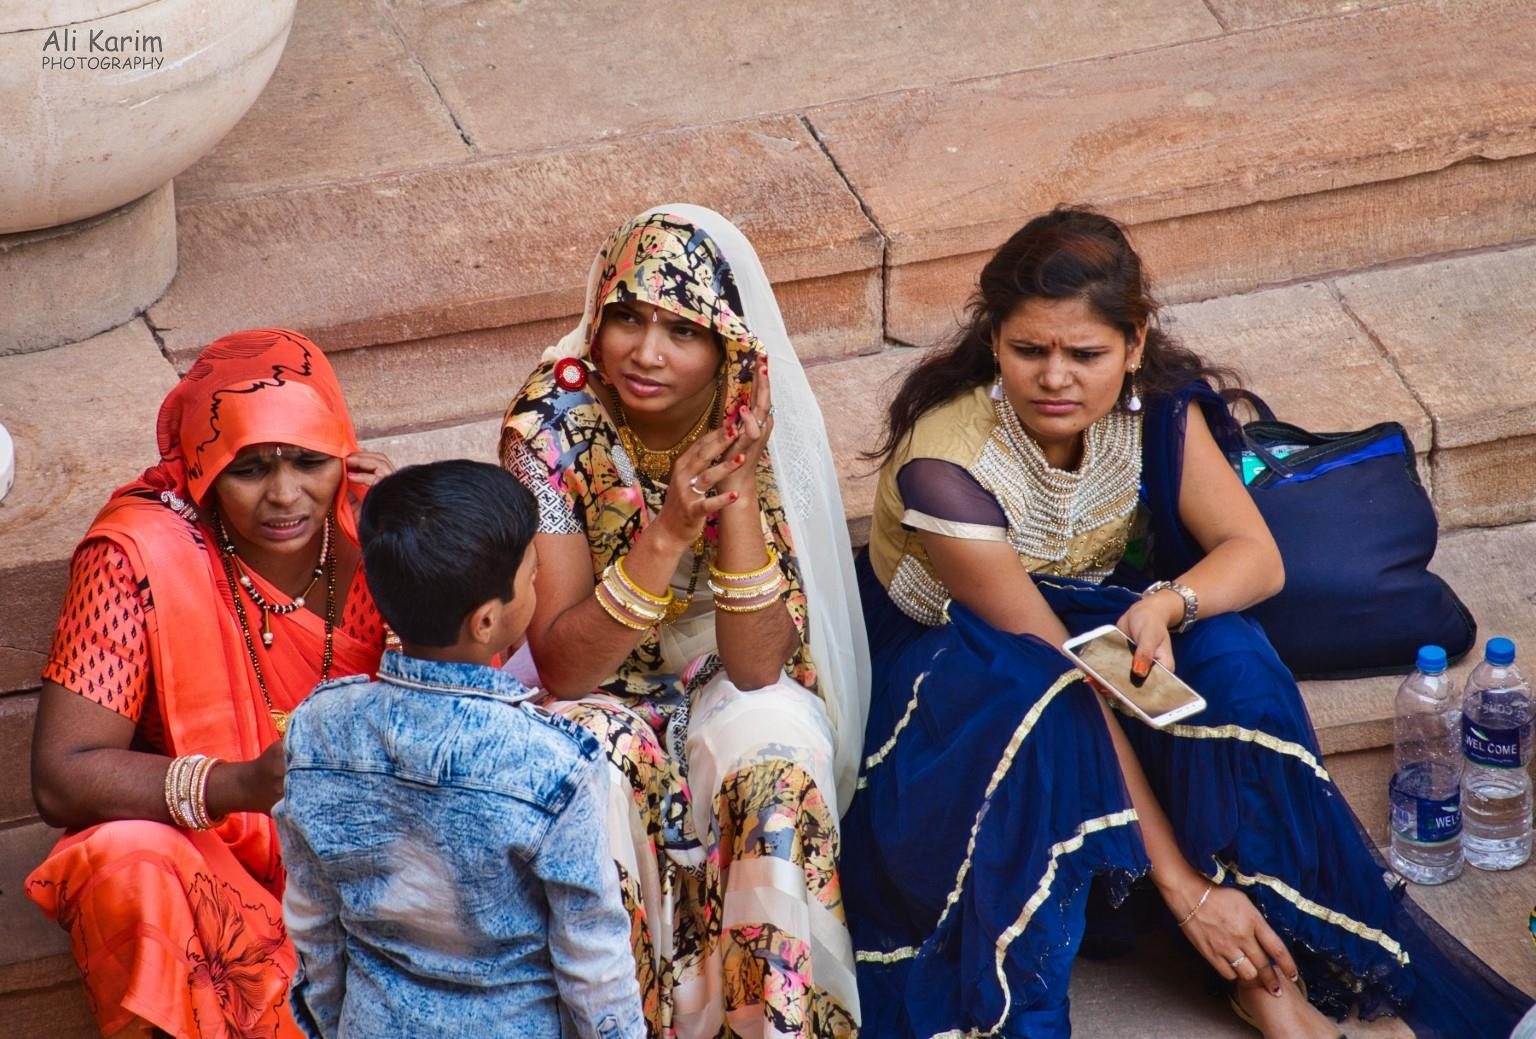 Jodhpur, Rajasthan Local tourists taking a breather from checking out the Fort; note the clothing and jewelry